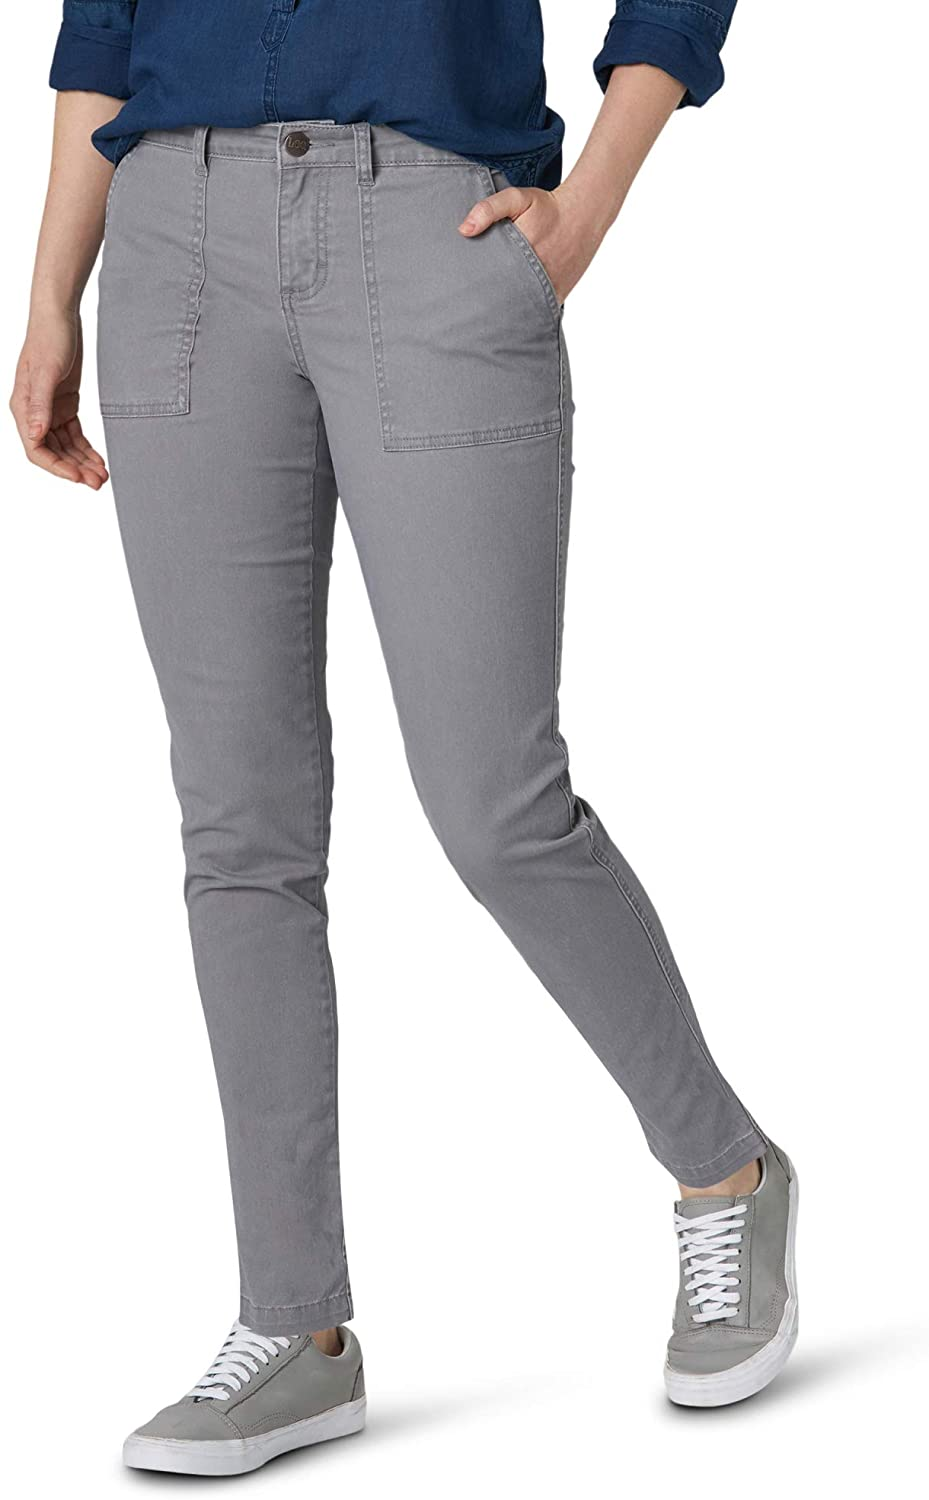 Lee Women's Legendary Regular Pant Daily bargain sale Fit Utility Tapered Wholesale